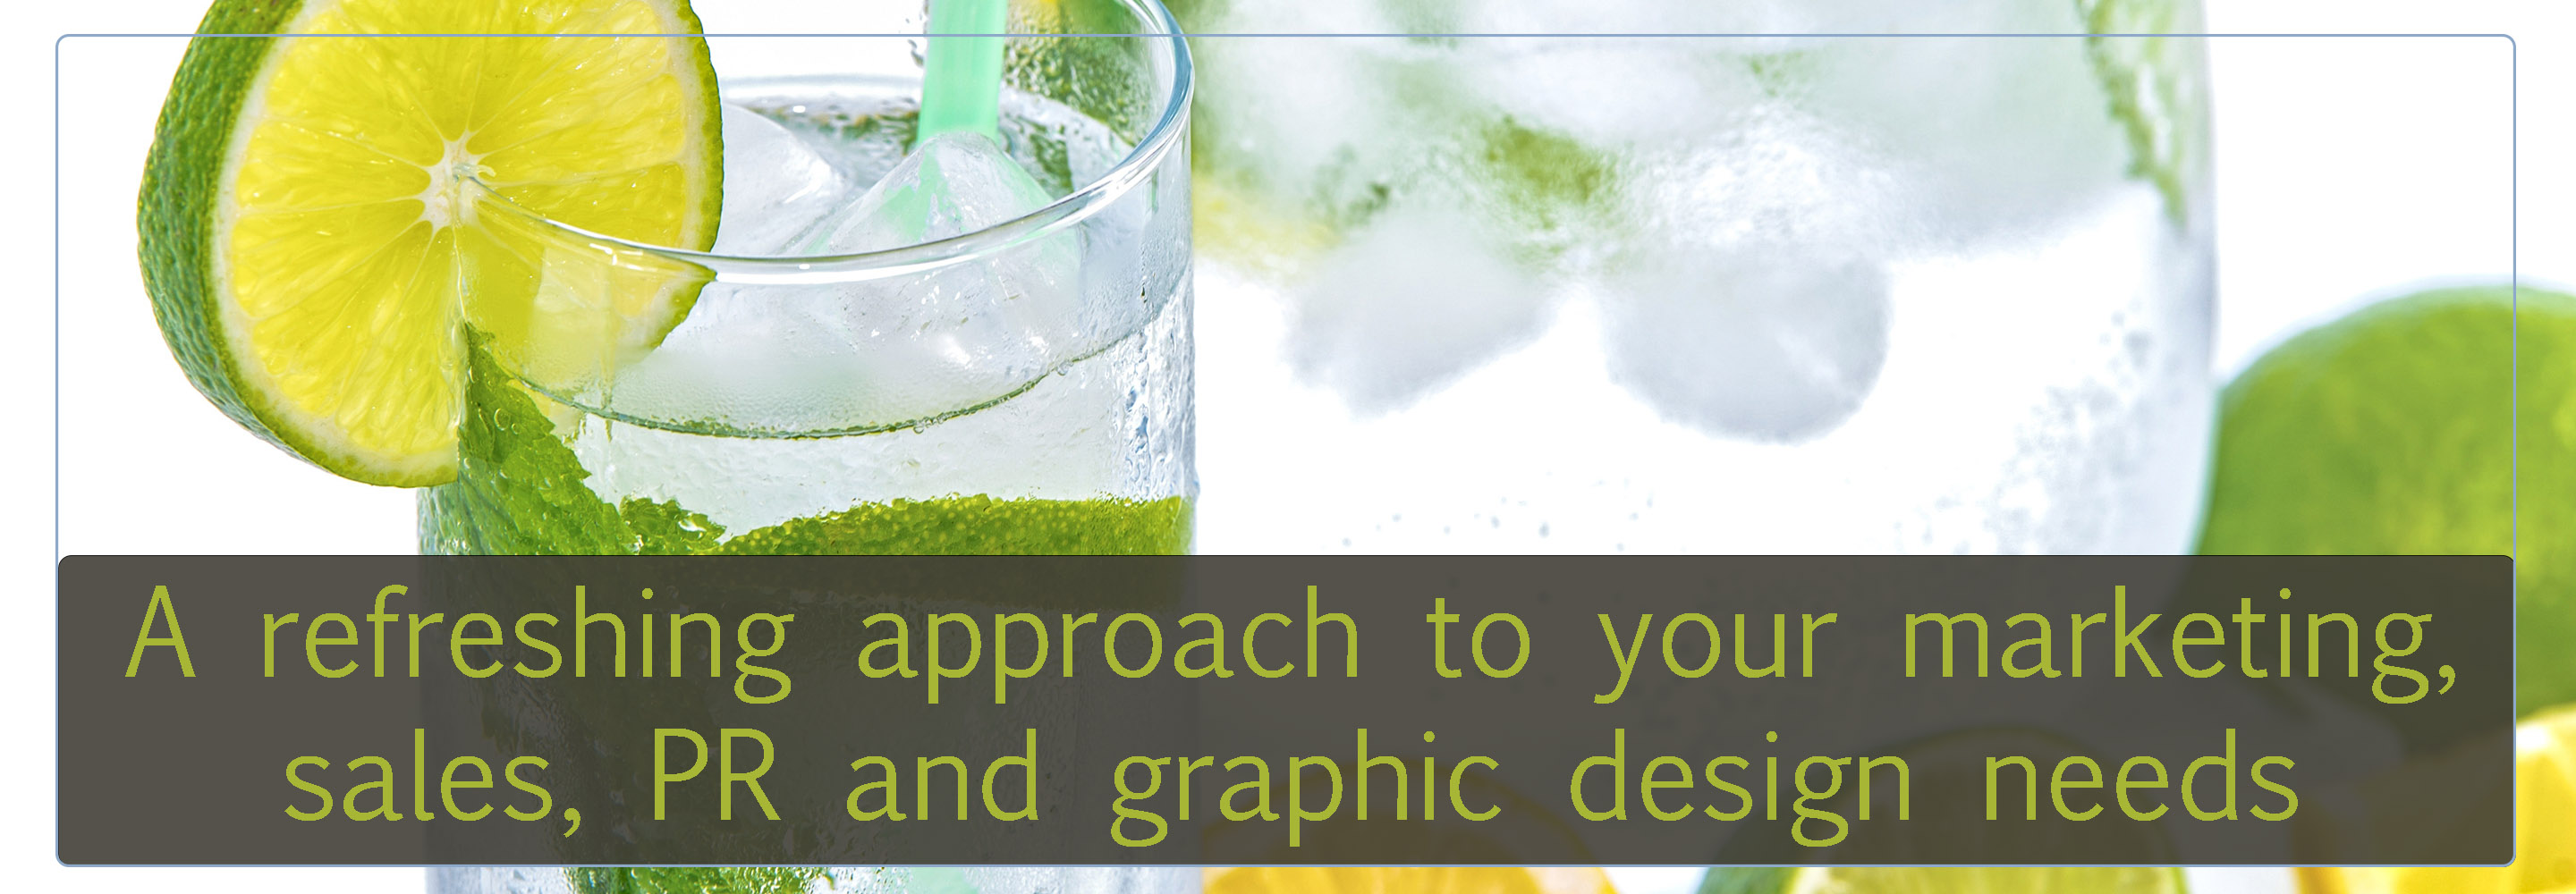 Home page A refreshing approach to your marketing, PR and graphic design needs